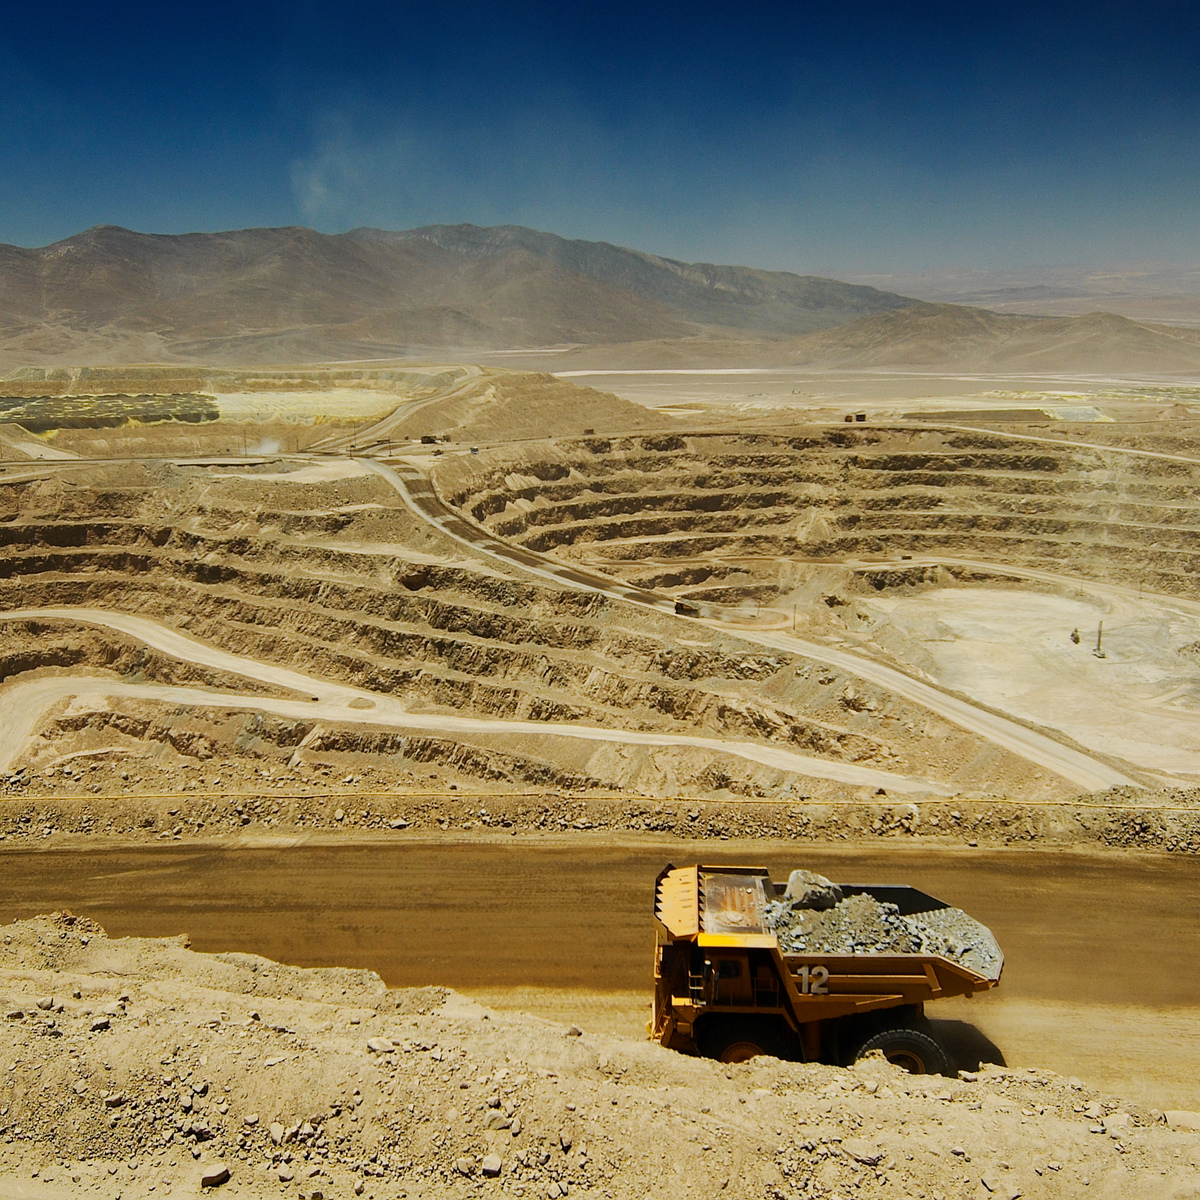 A truck hauls ore at Lomas Bayas open pit mine, Chile